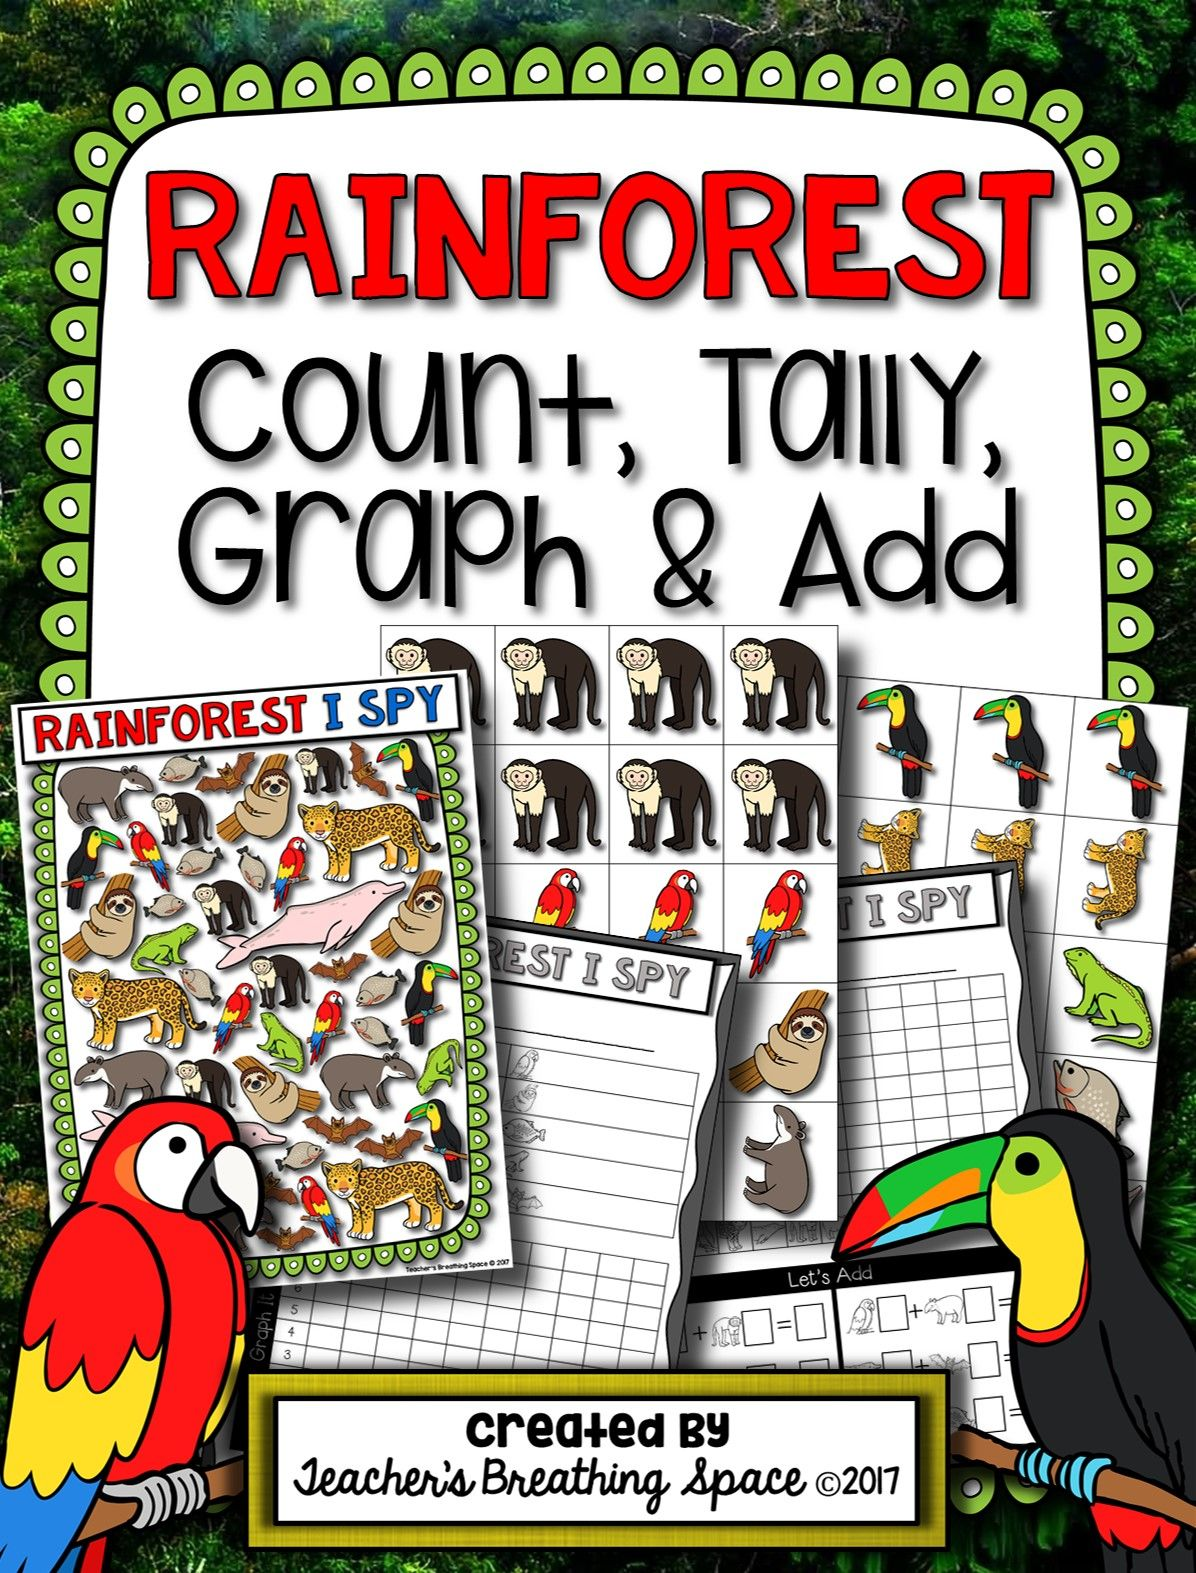 Rainforest Count Tally Graph And Add Rainforest